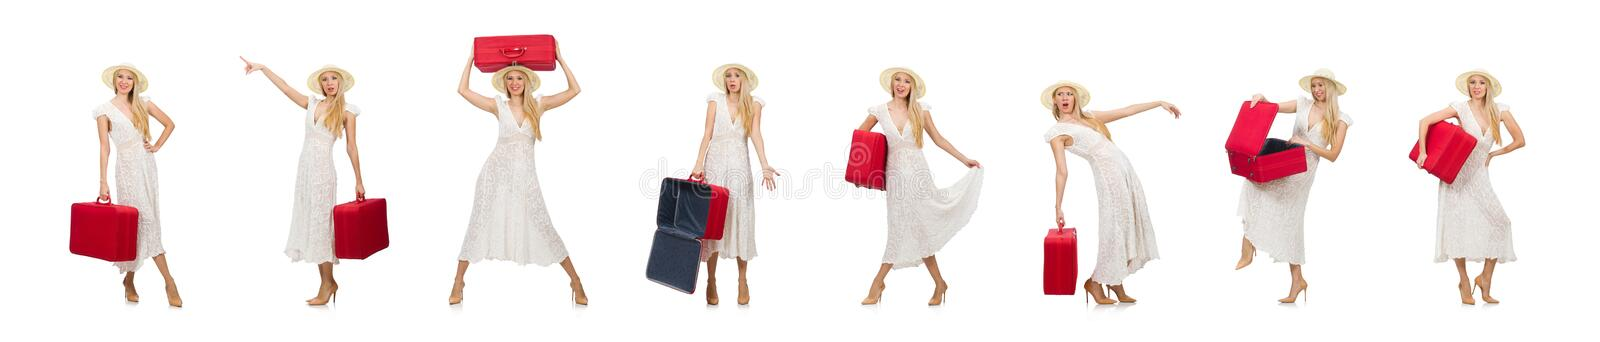 Woman with red suitcase isolated on white stock photos